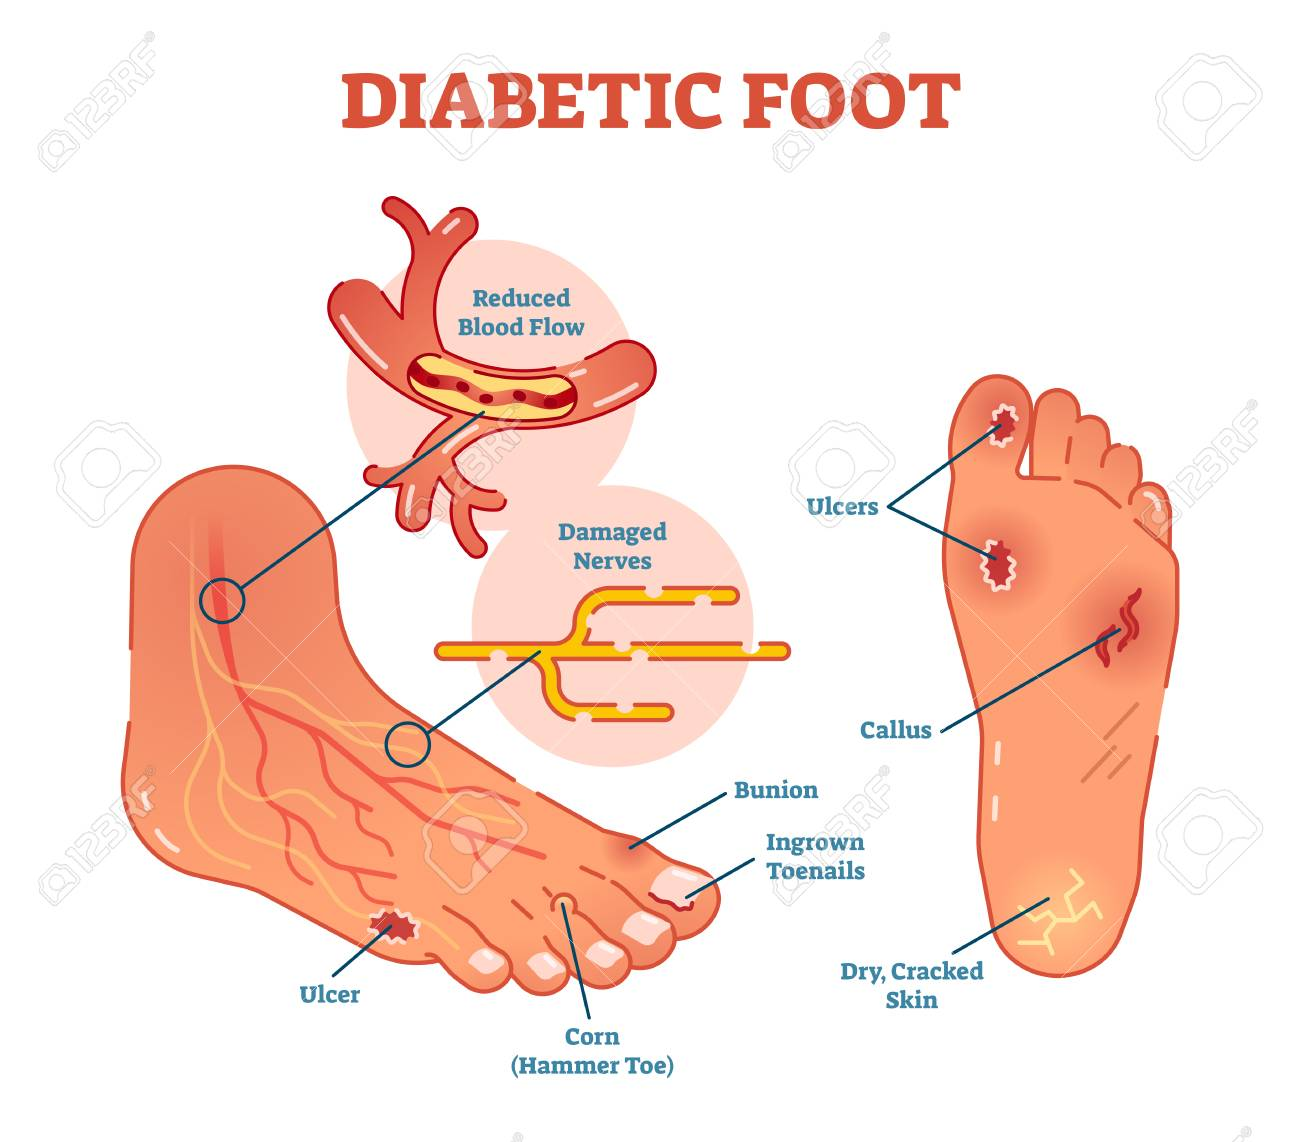 Diabetic foot medical vector illustration scheme with common foot conditions. - 94739246